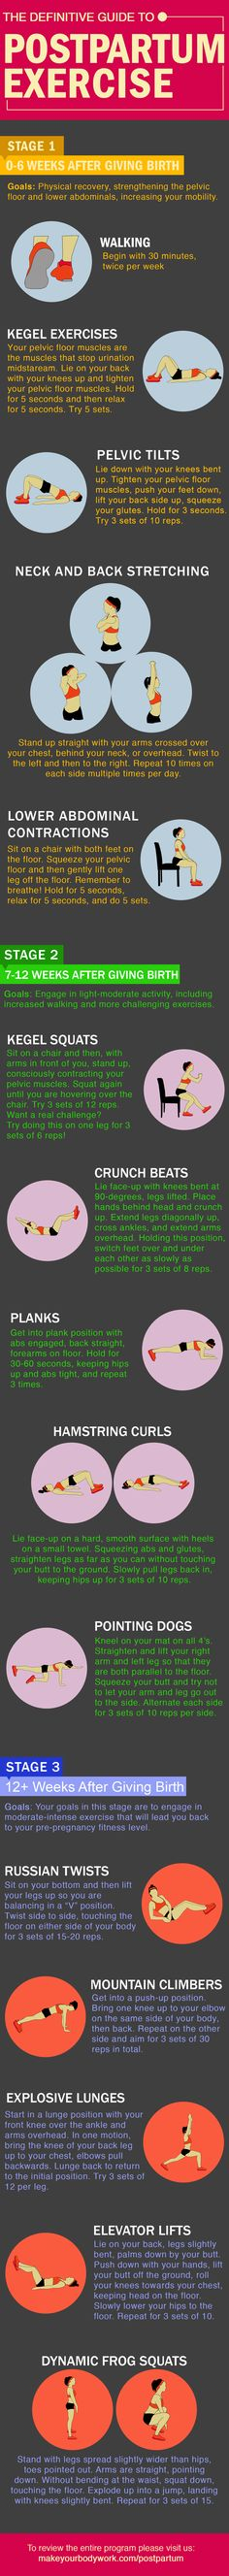 An awesome and comprehensive post pregnancy fitness guide #infographic #fitnessguide #postpregnancy